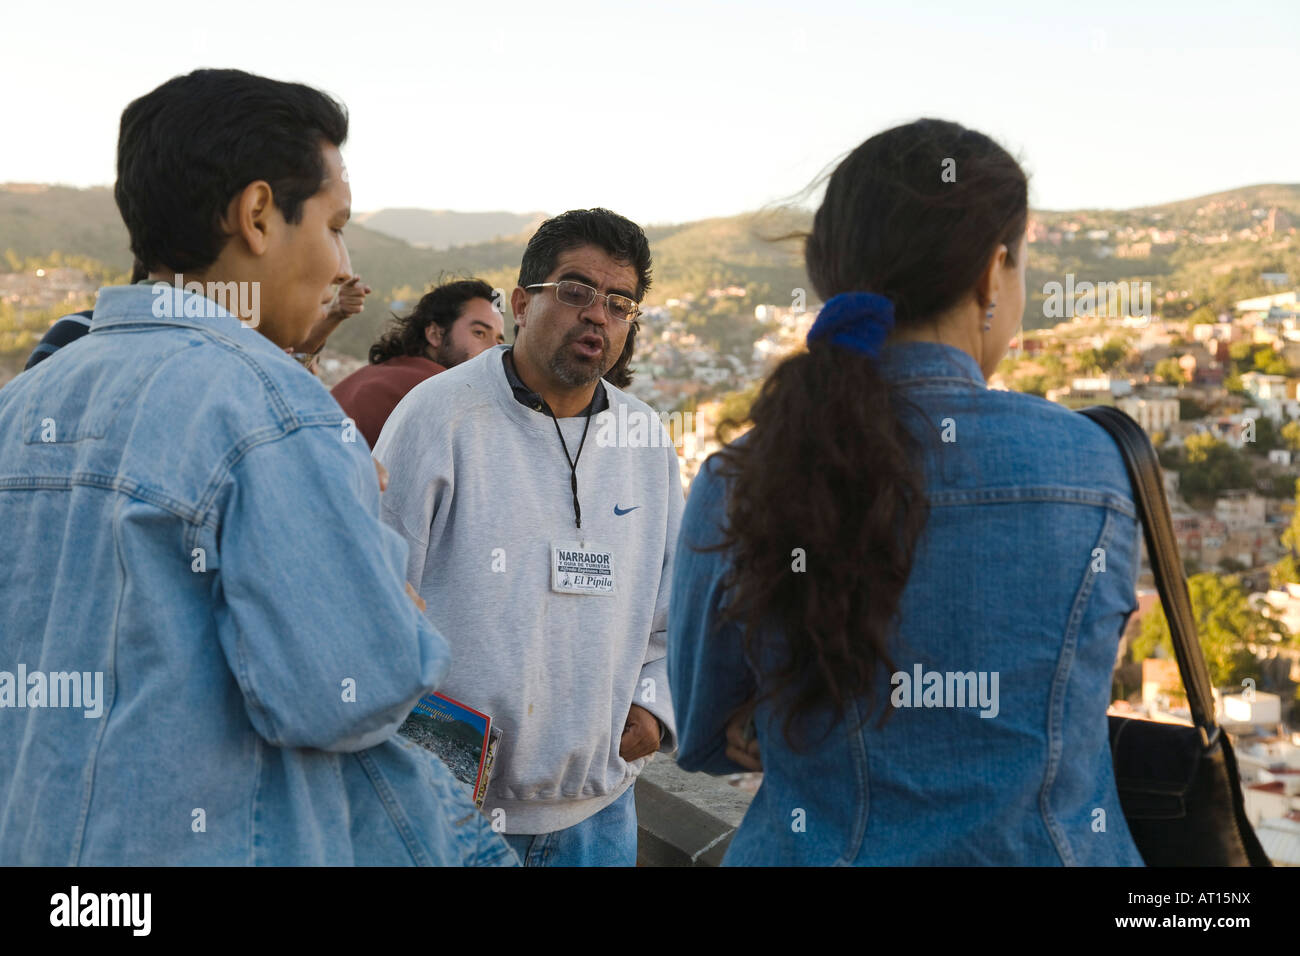 MEXICO Guanajuato Tourist guide with badge talking with group of visitors to Pipila monument scenic overlook of - Stock Image